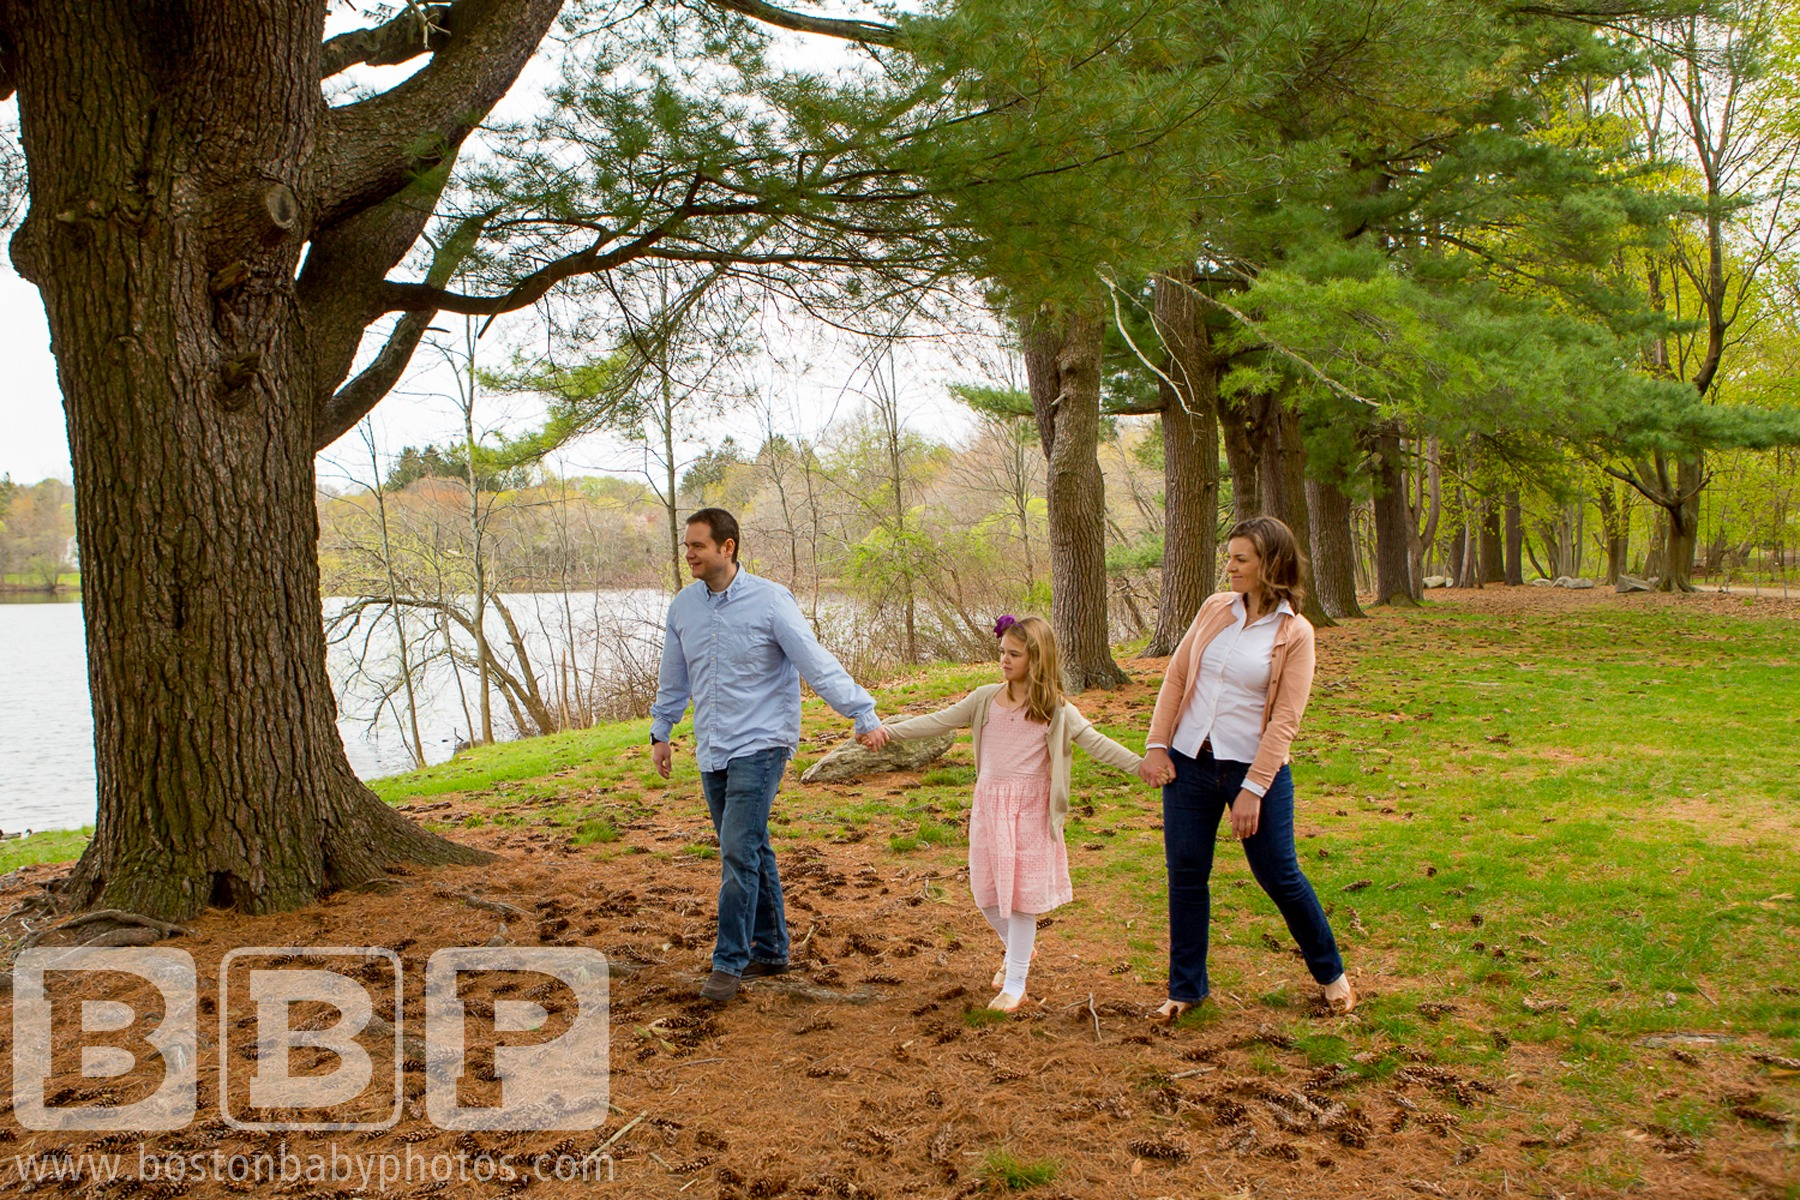 Milton MA Family Photographer - Minishoots at Turner's Pond are pretty fantastic